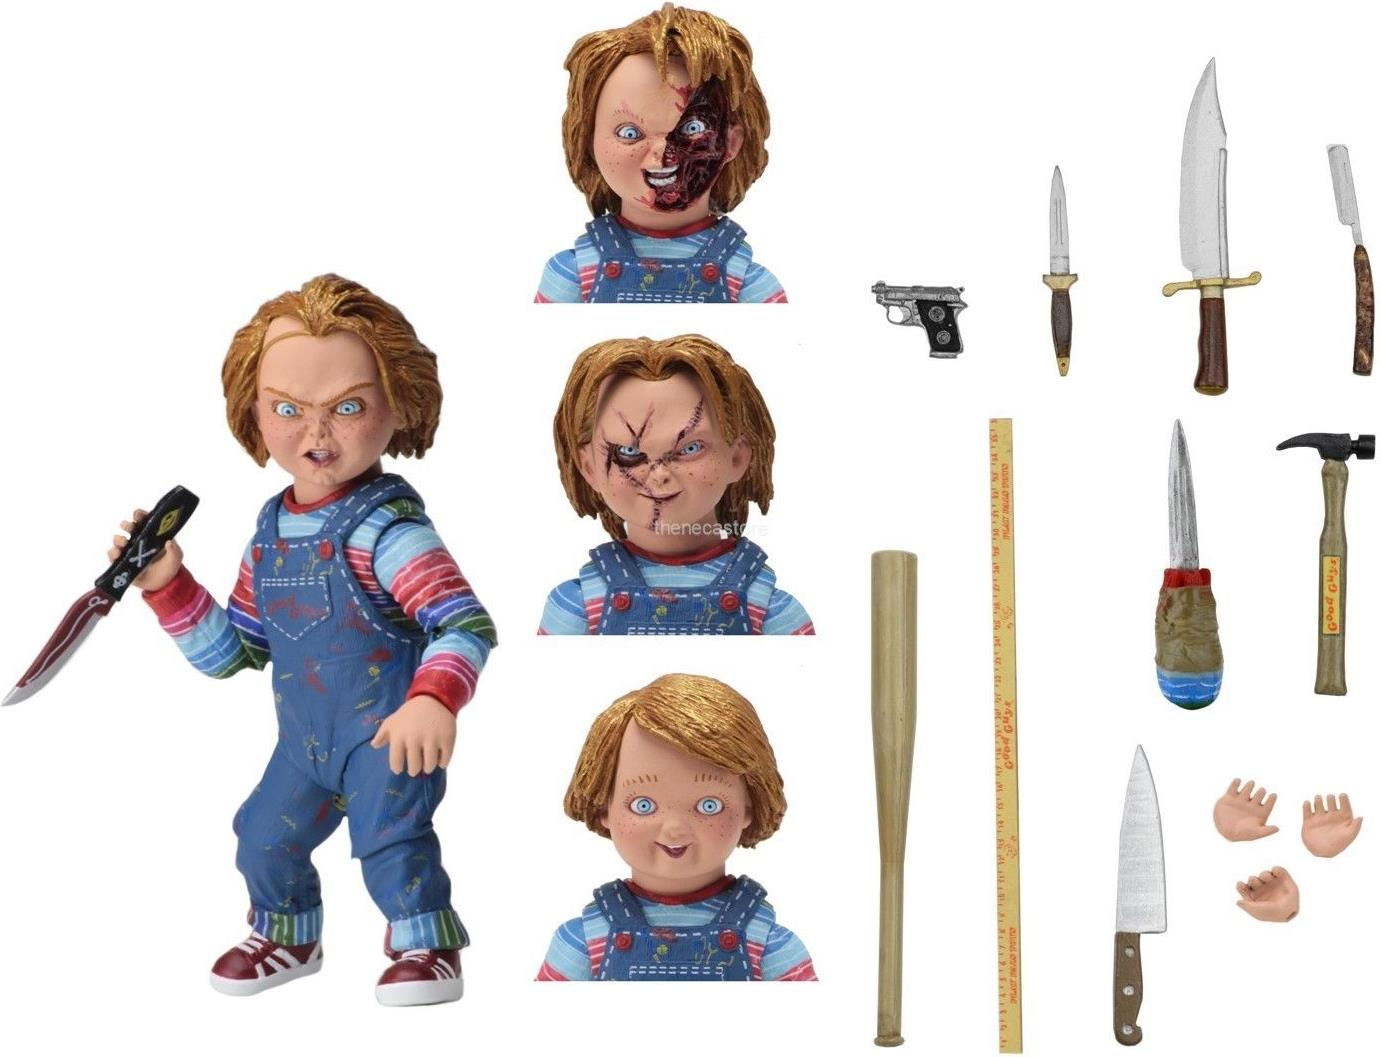 NECA Chucky 4 inch Figure - Ultimate Chucky NECA, Chucky, Action Figures, 2017